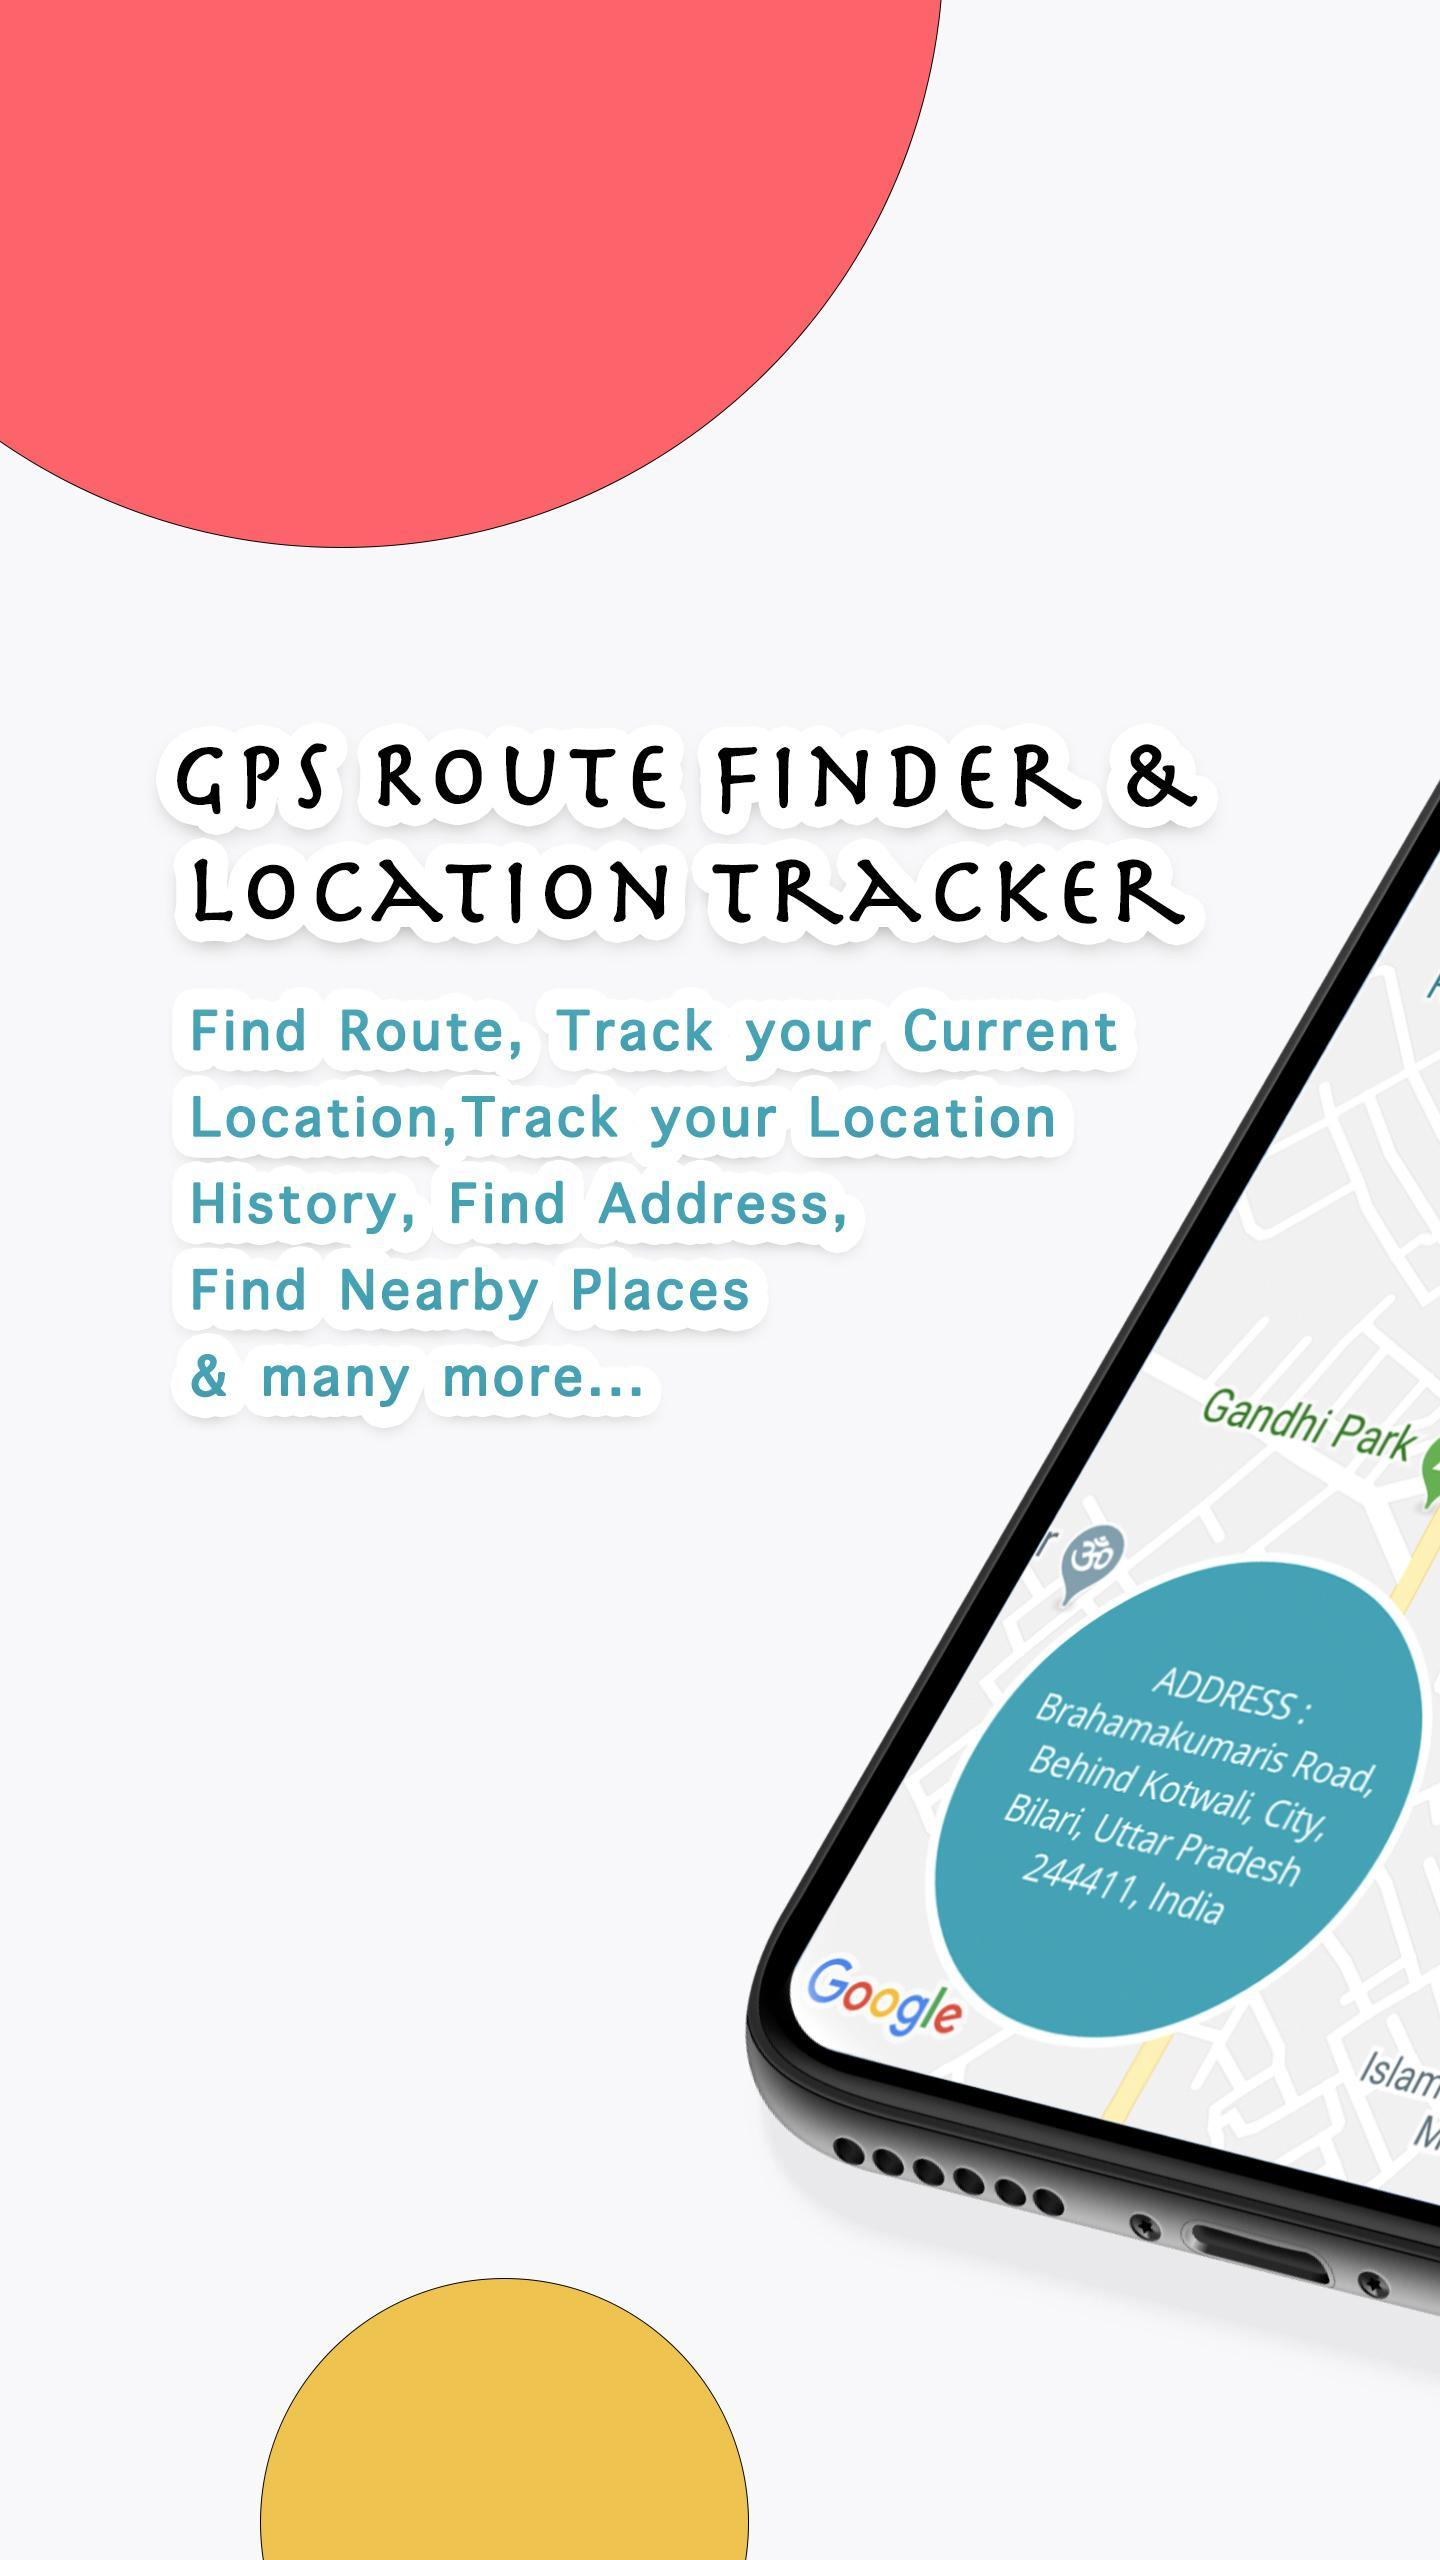 GPS Route Finder & Location Tracker - Navigation screenshot 1